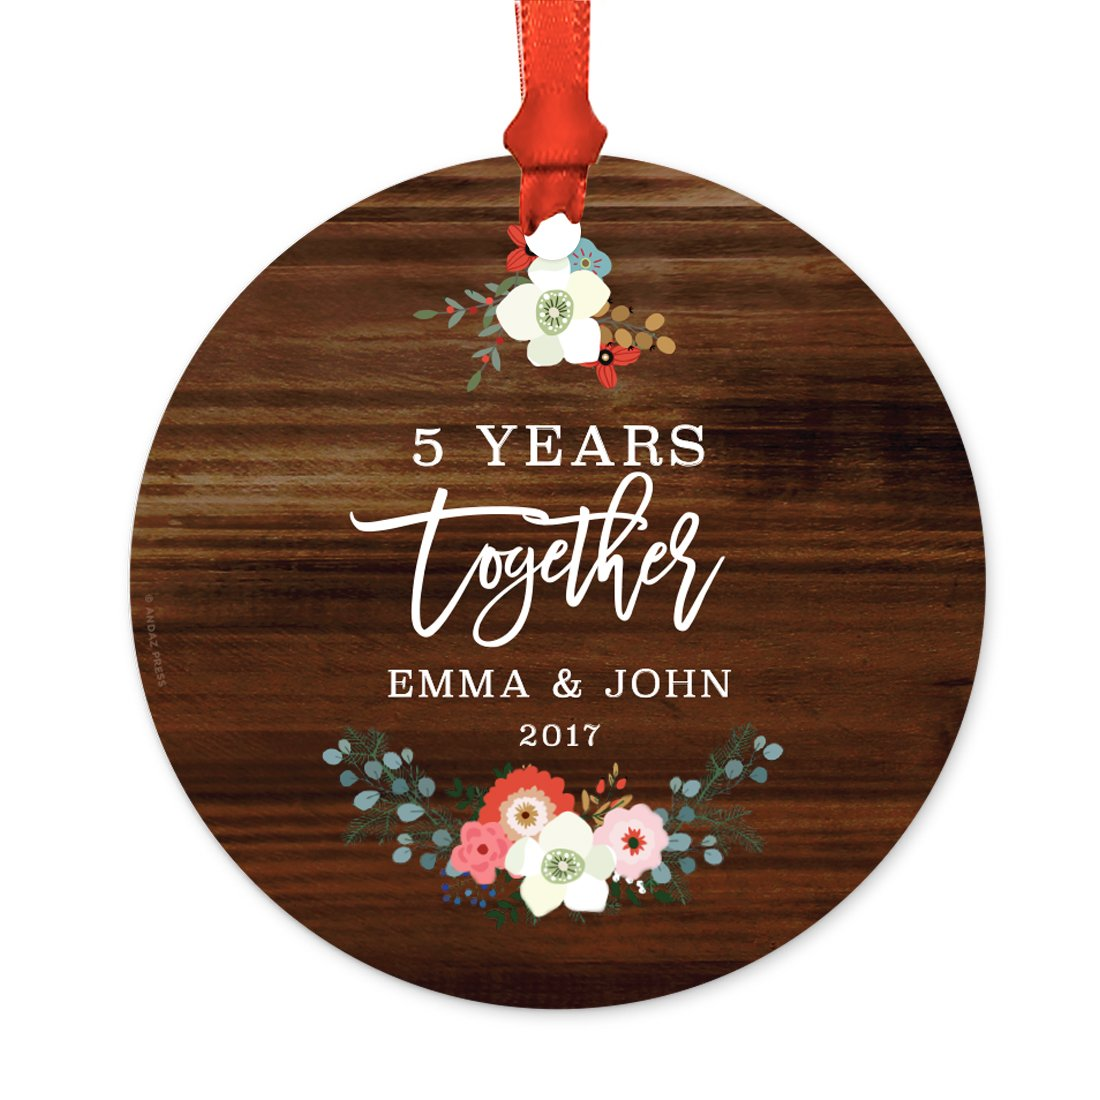 Andaz Press Personalized Wedding Anniversary Metal Christmas Ornament, 5 Years Together, Emma & John 2018, Rustic Wood Florals, 1-Pack, Includes Ribbon and Gift Bag, Custom Name